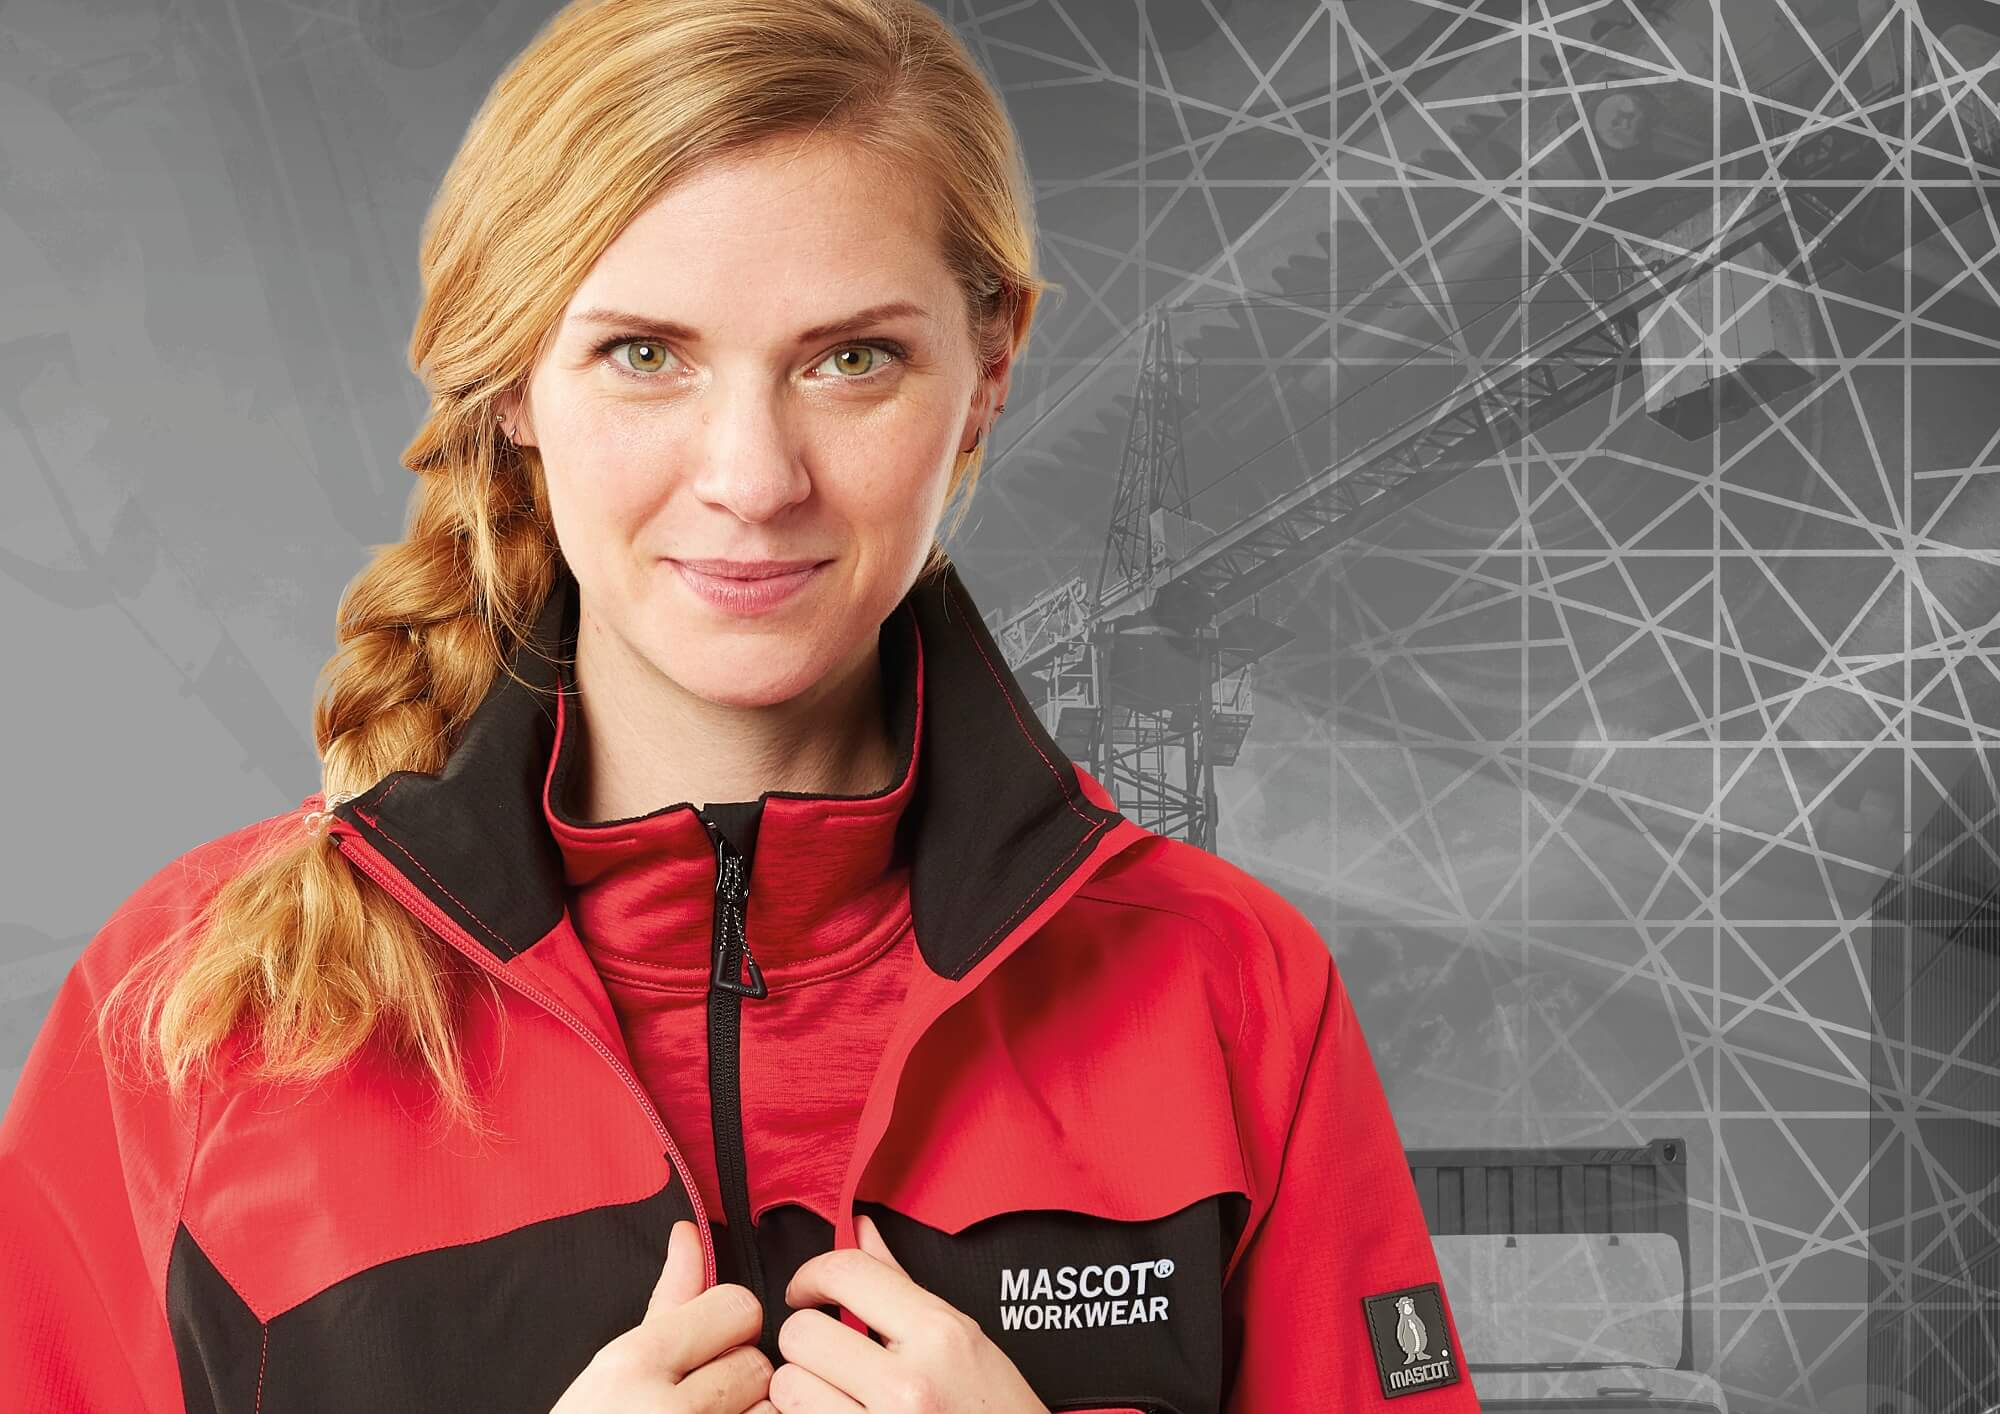 MASCOT® ACCELERATE - Red - Jacket for women